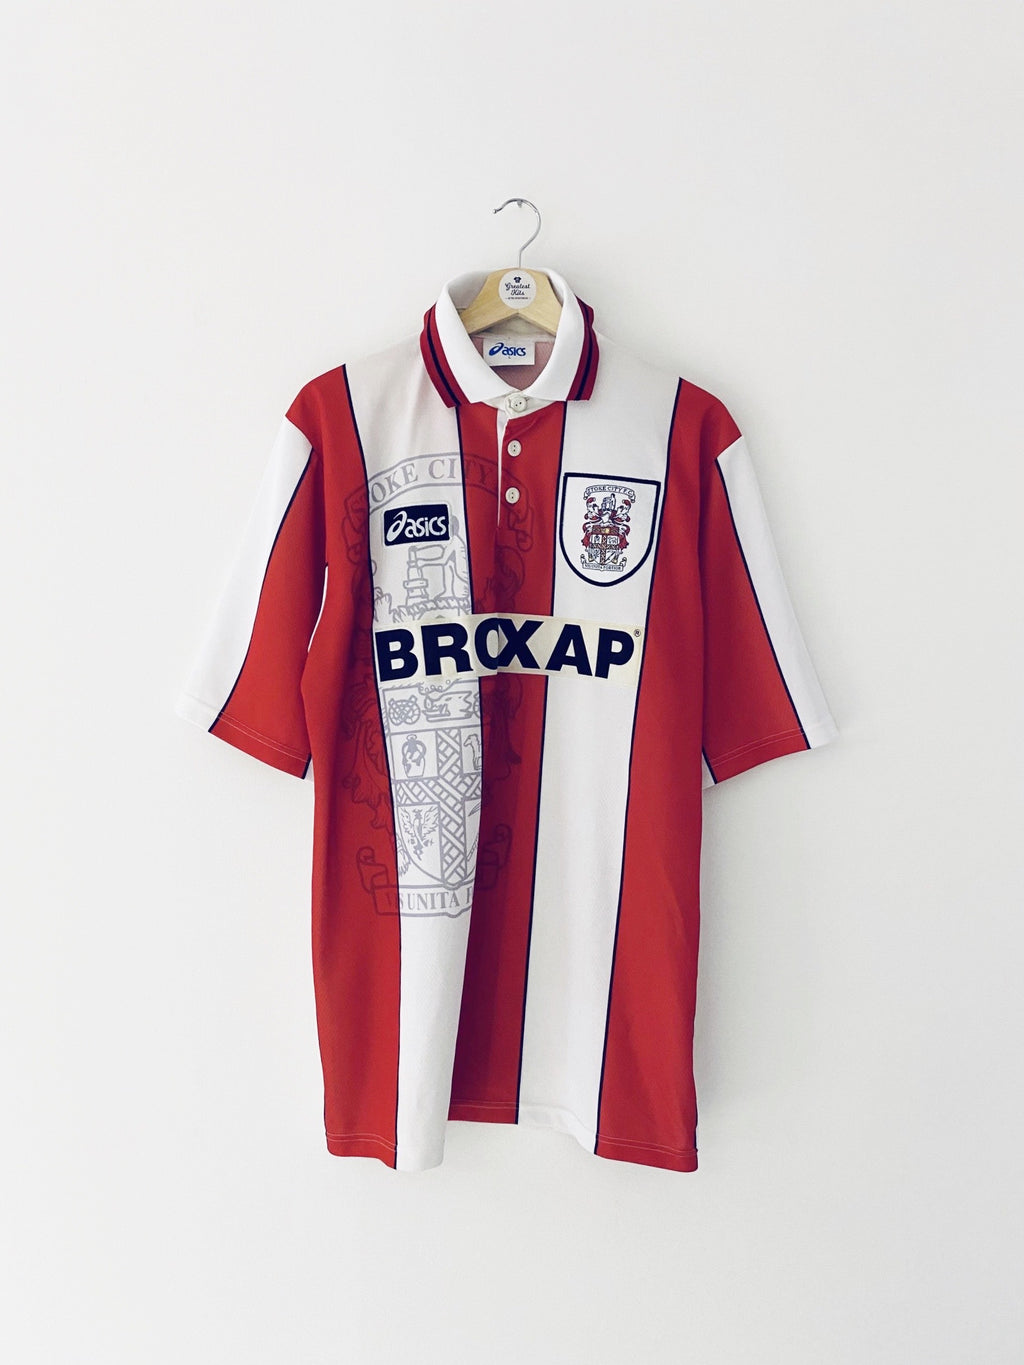 1995/96 Stoke City Home Shirt (L) 9/10